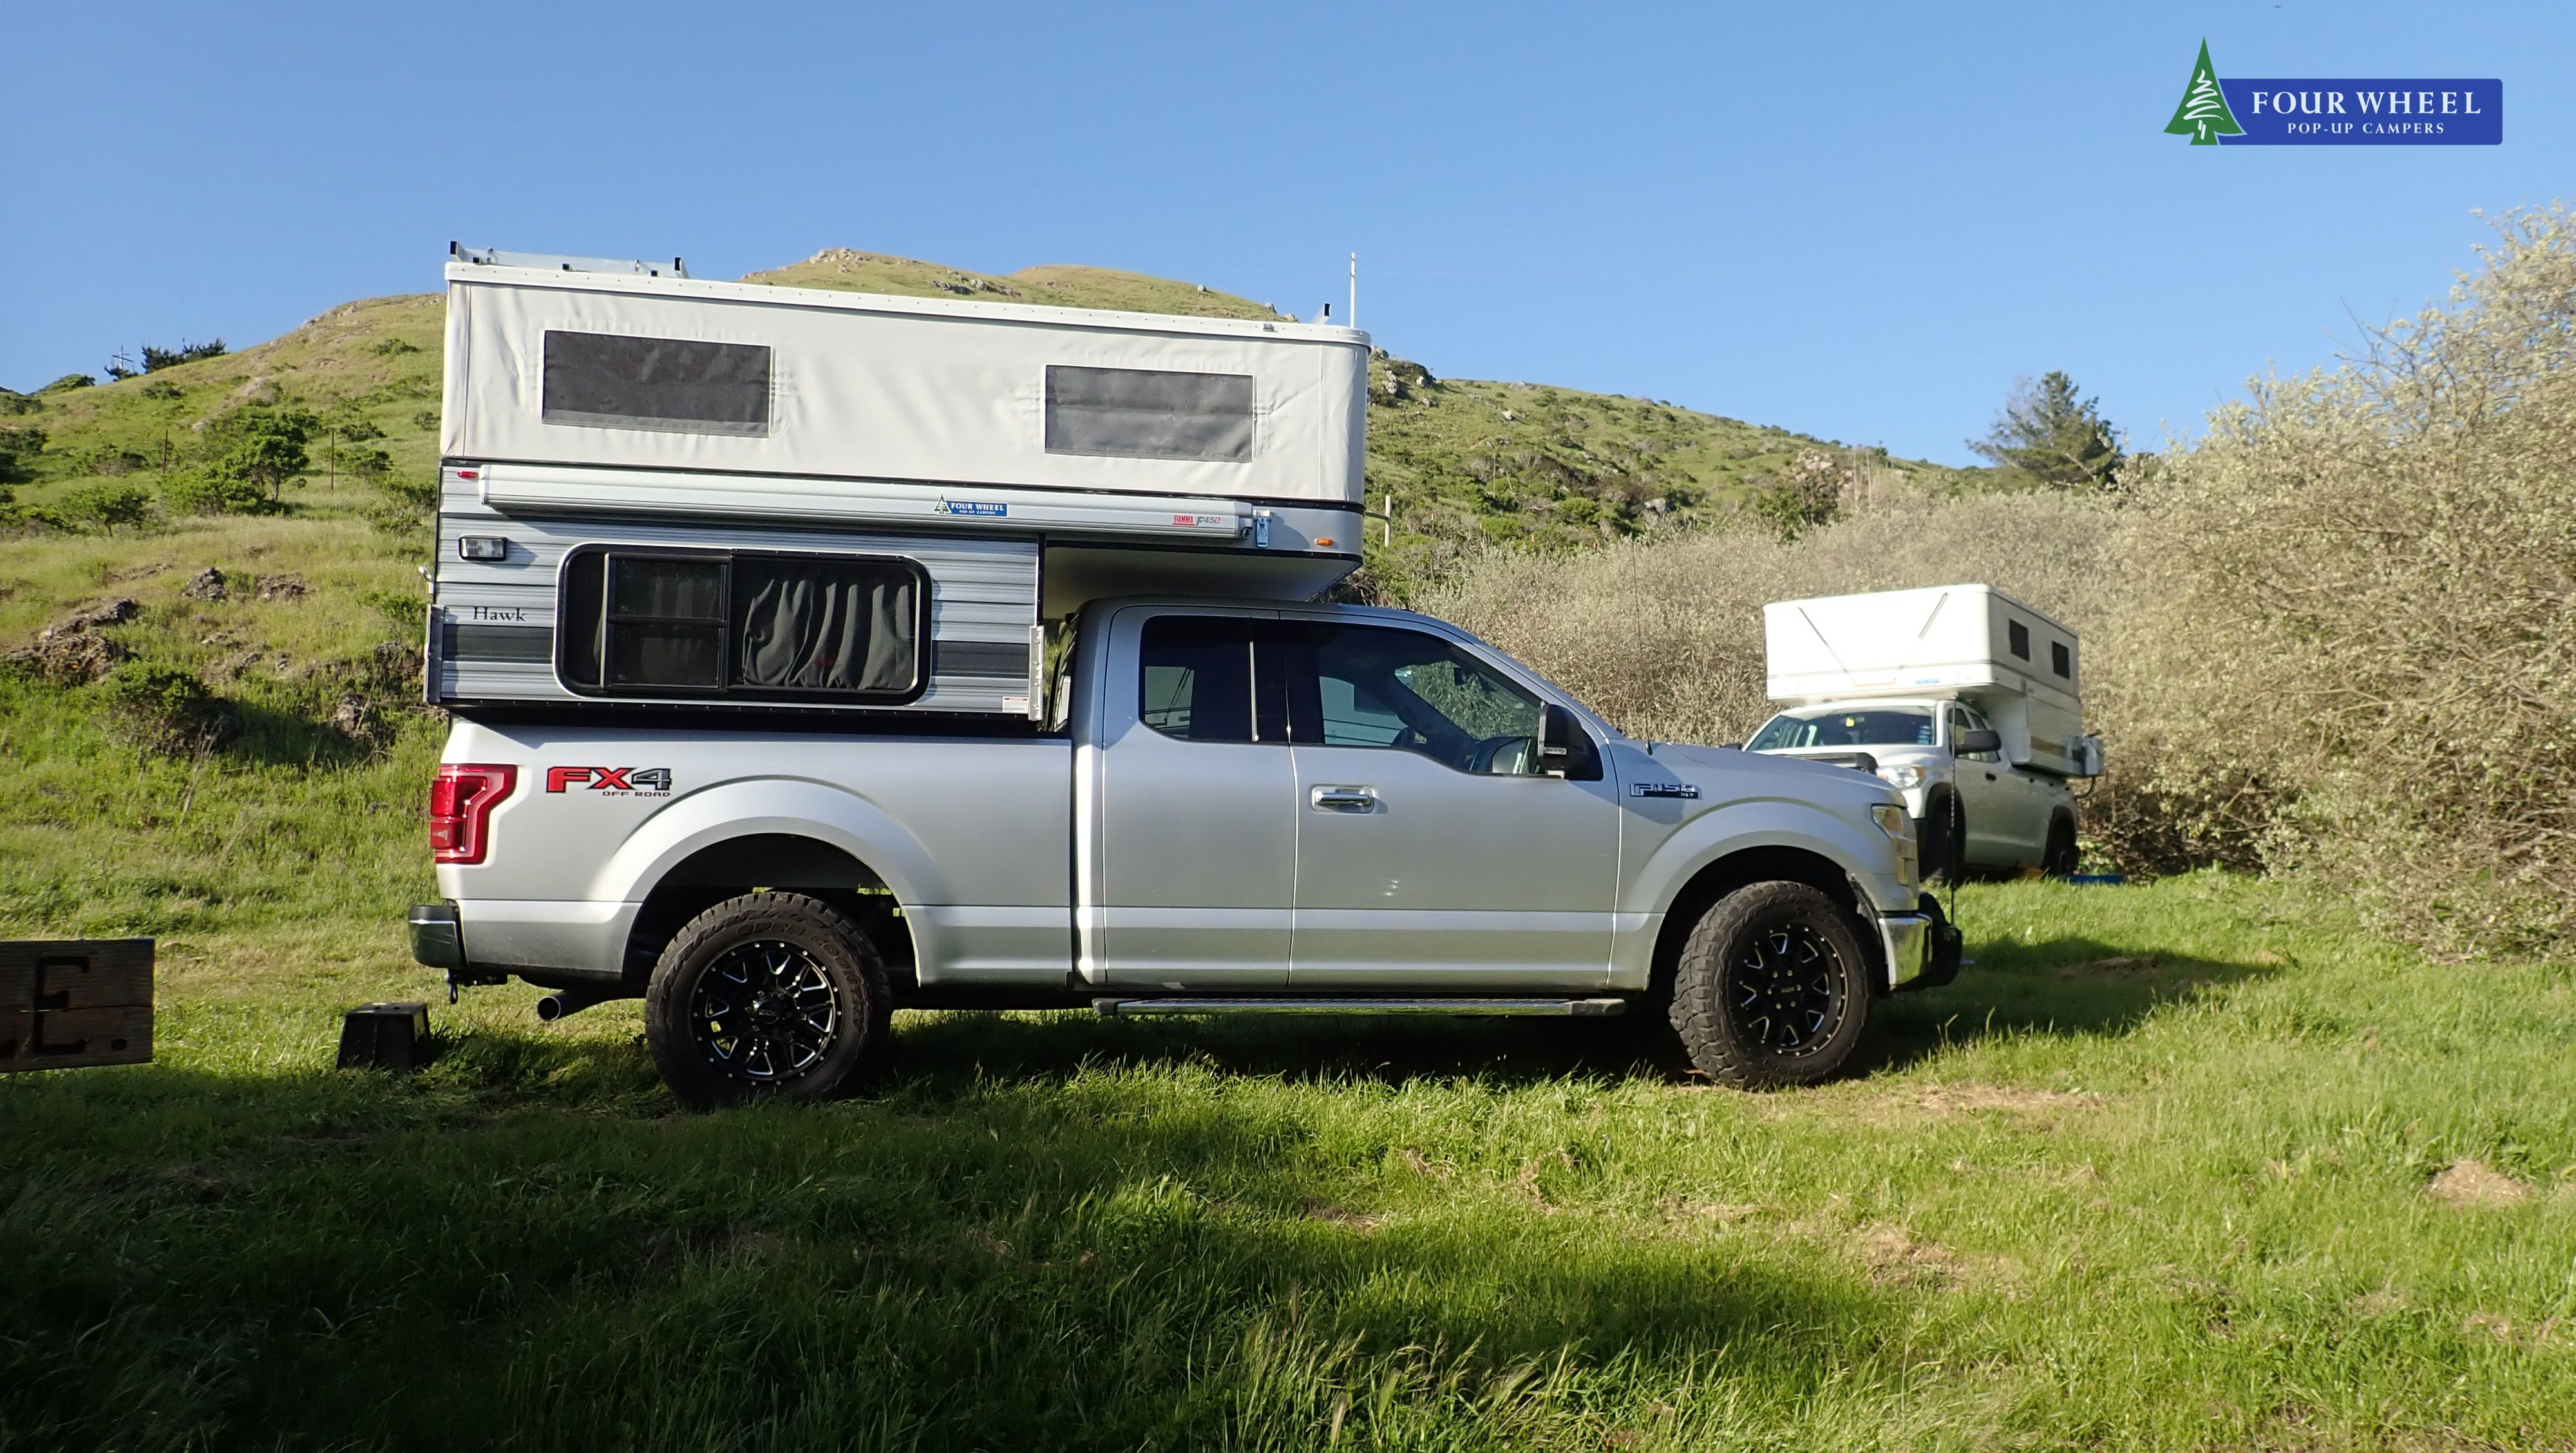 Remote Camping With A Friend Fourwheelcampers Fwc